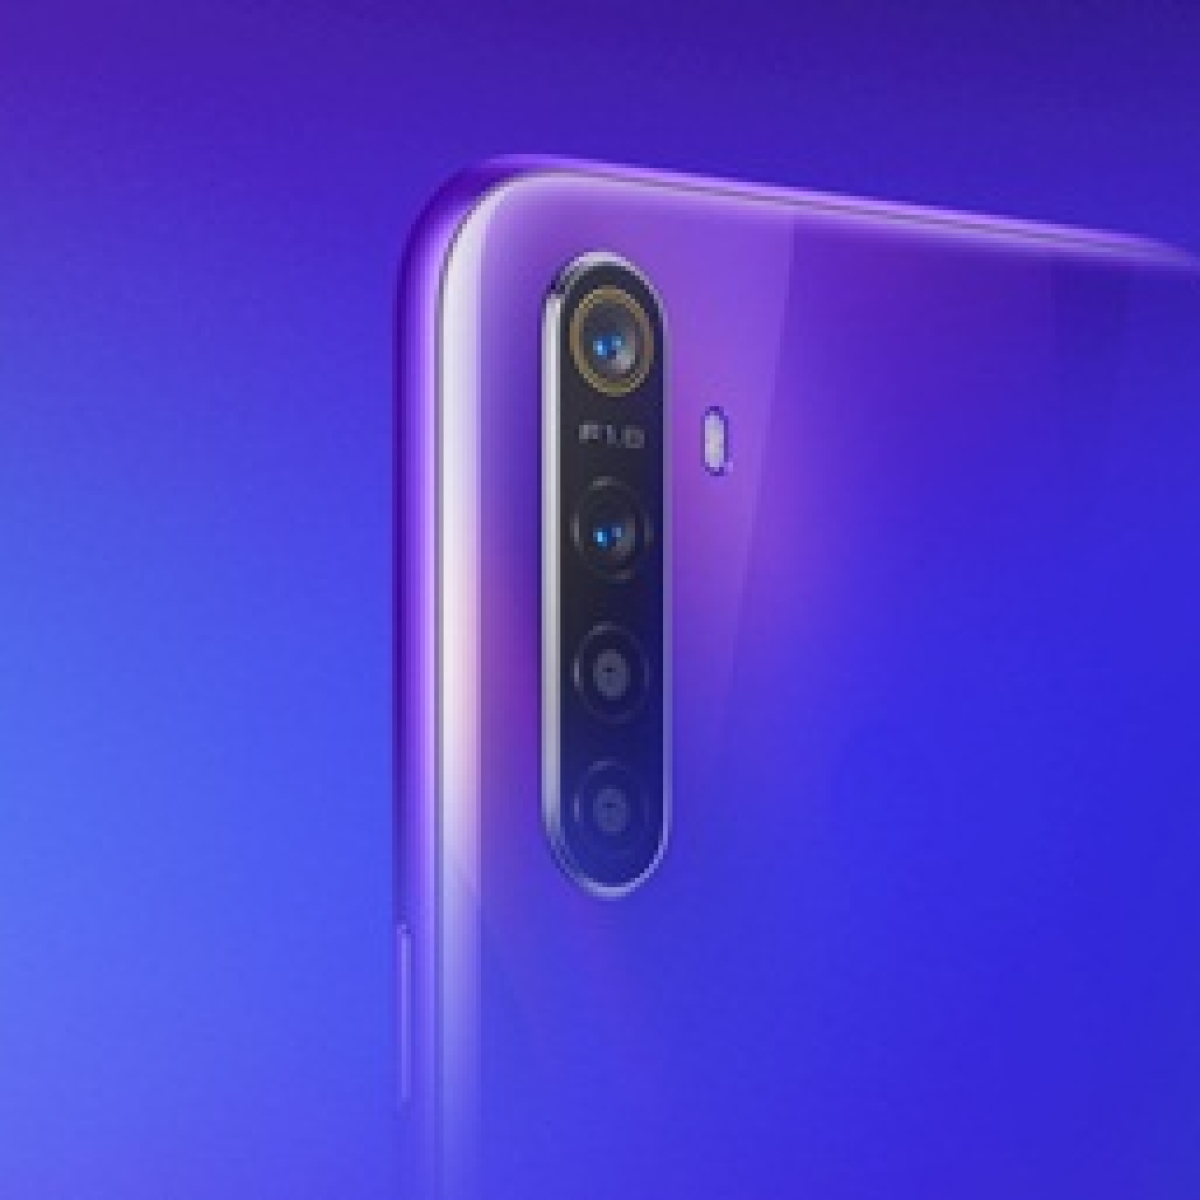 Realme CEO changes Twitter name, hints at new phone